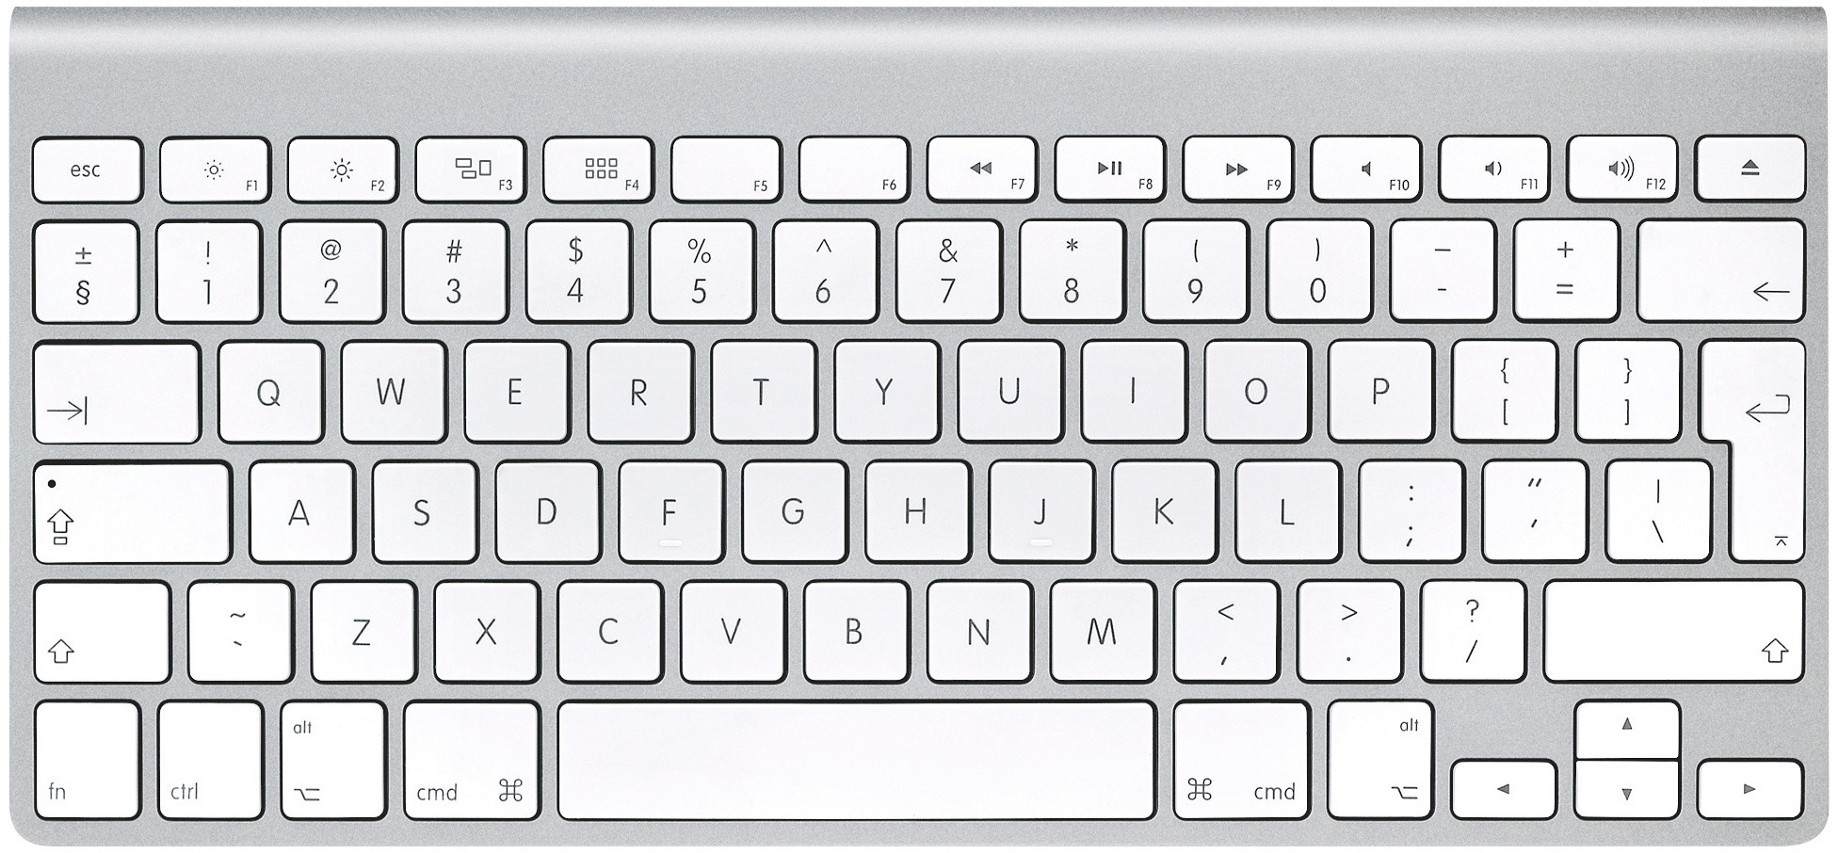 Switching from QWERTZ to QWERTY on macOS - Florian Hirsch - Medium